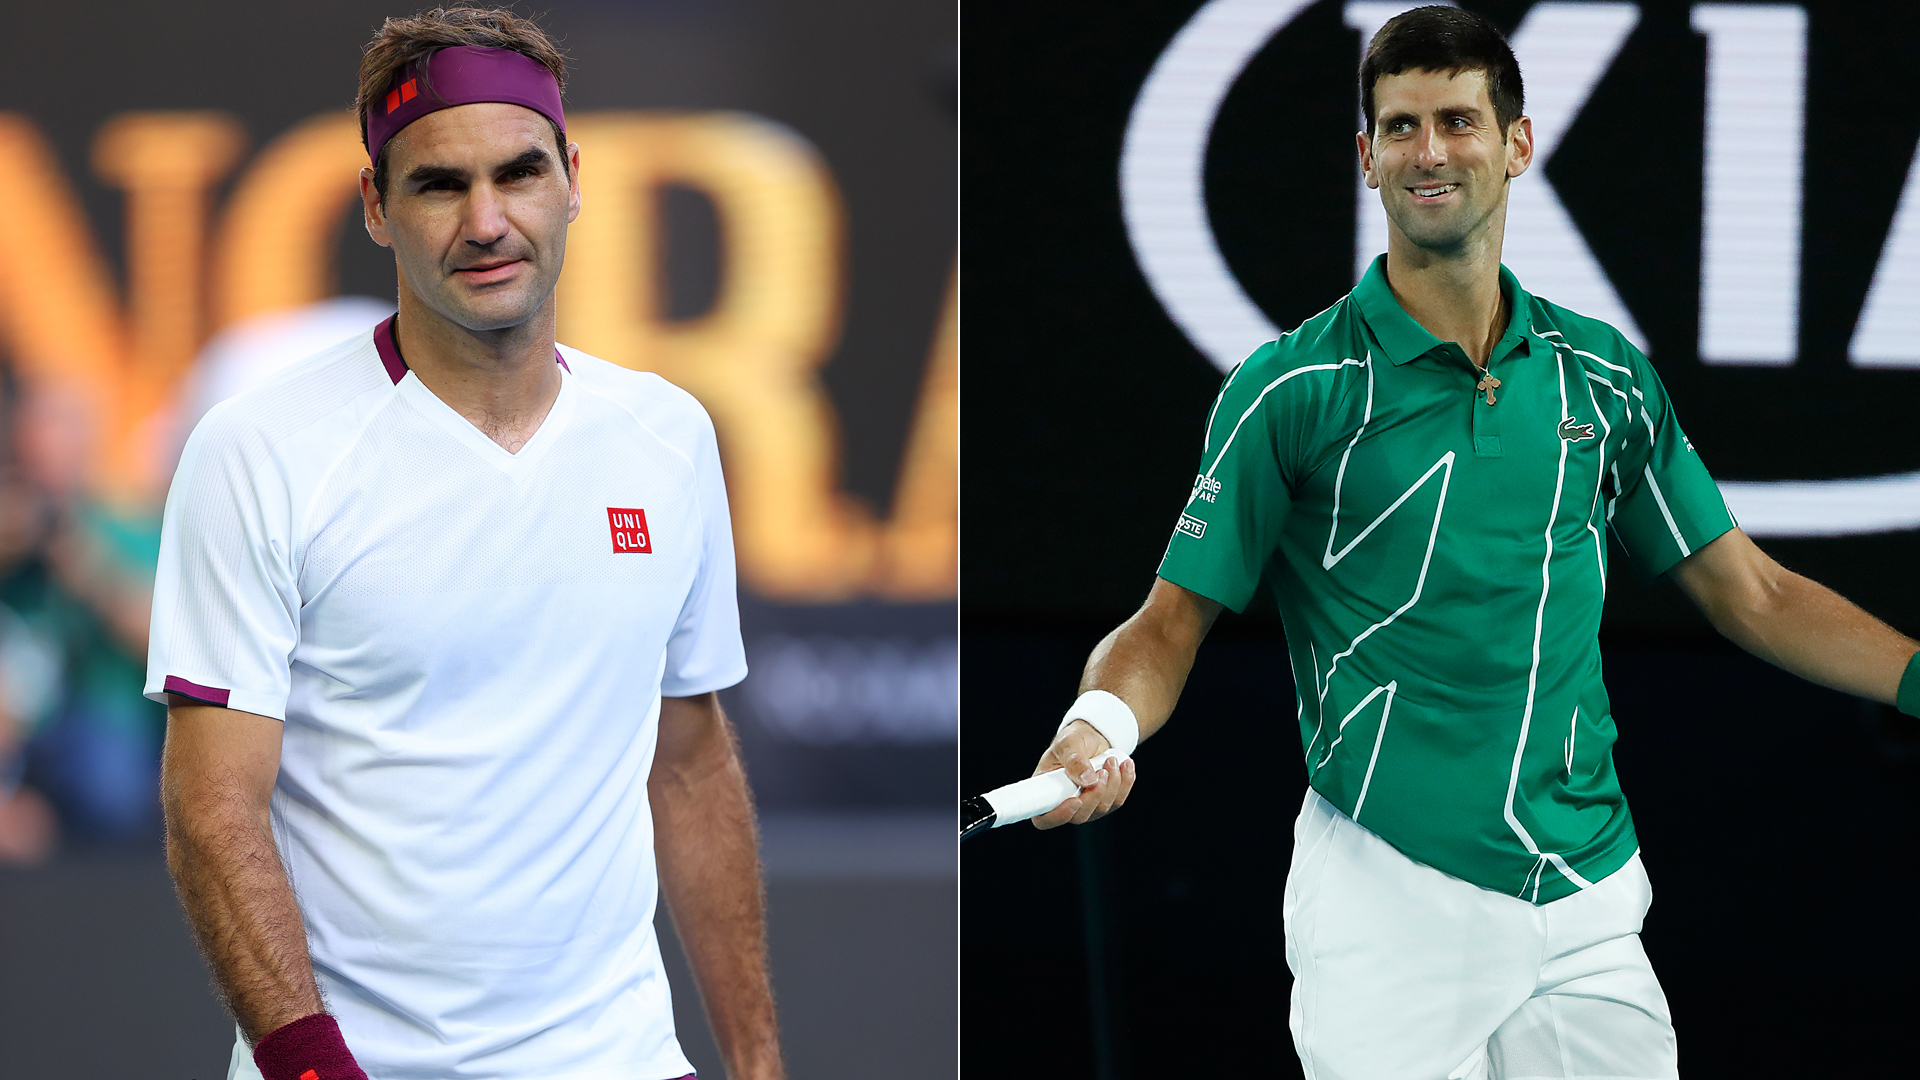 Australian Open 2020: Roger Federer and Novak Djokovic results and form ahead of semi-final